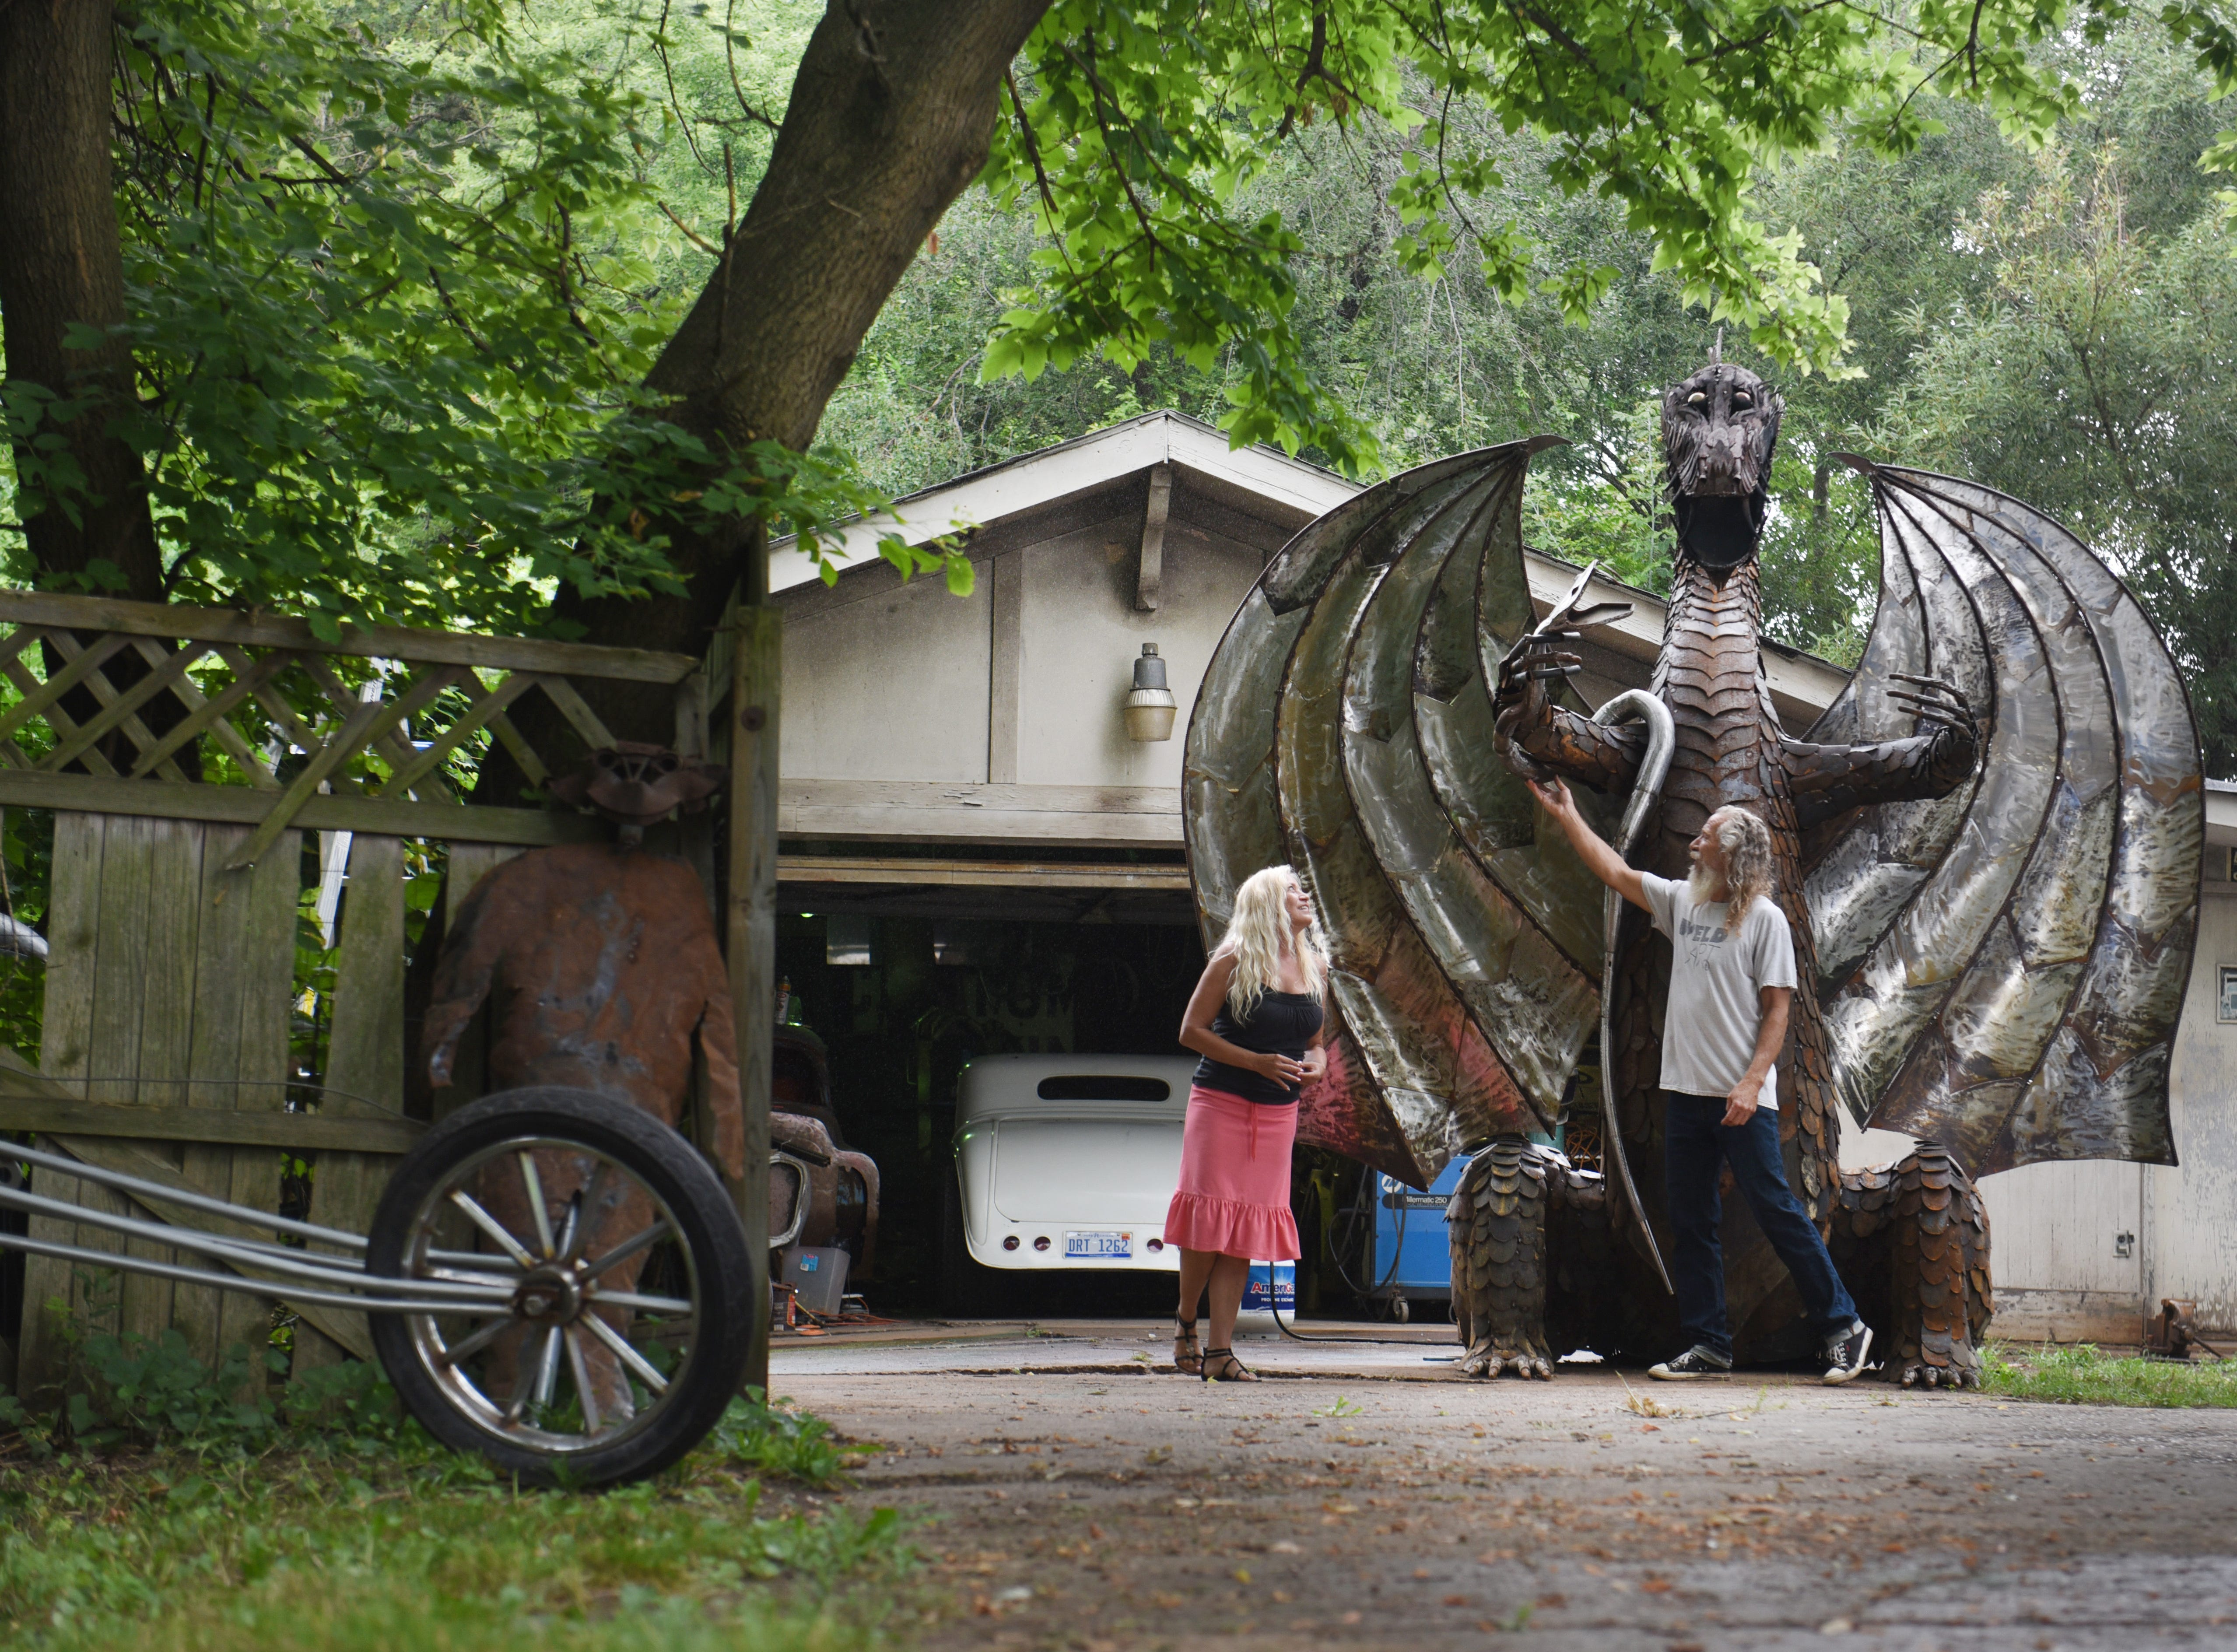 Taylor artist and metalworker Keith Coleman (right) and Suzanne Carol walk around their 12-foot fire breathing dragon metal monster